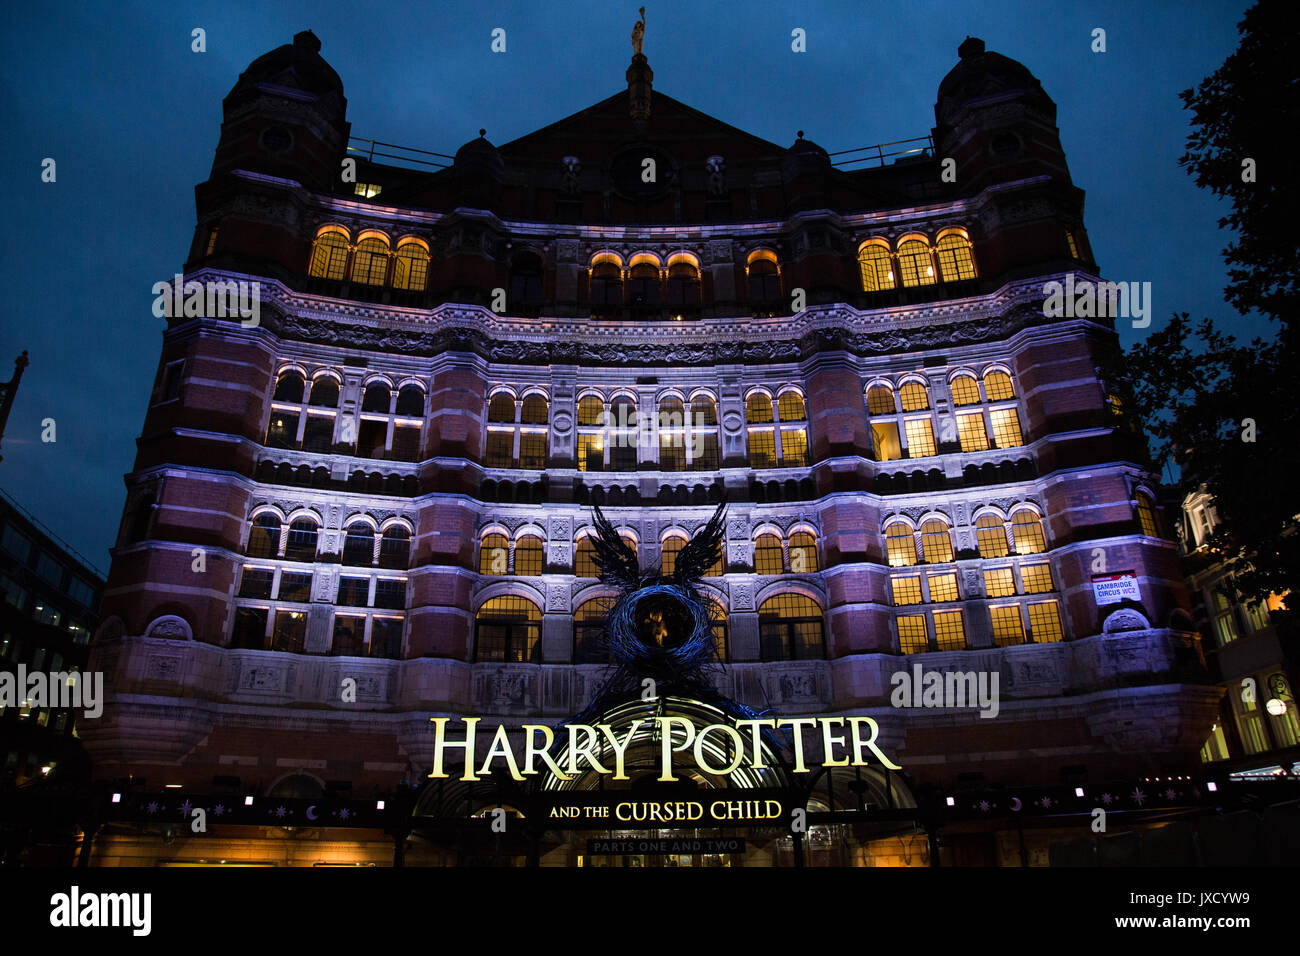 Harry Potter and the Cursed Child play at Palace Theatre in Deep blue and purple colours taken late twilight on Shaftesbury Avenue, London UK. - Stock Image